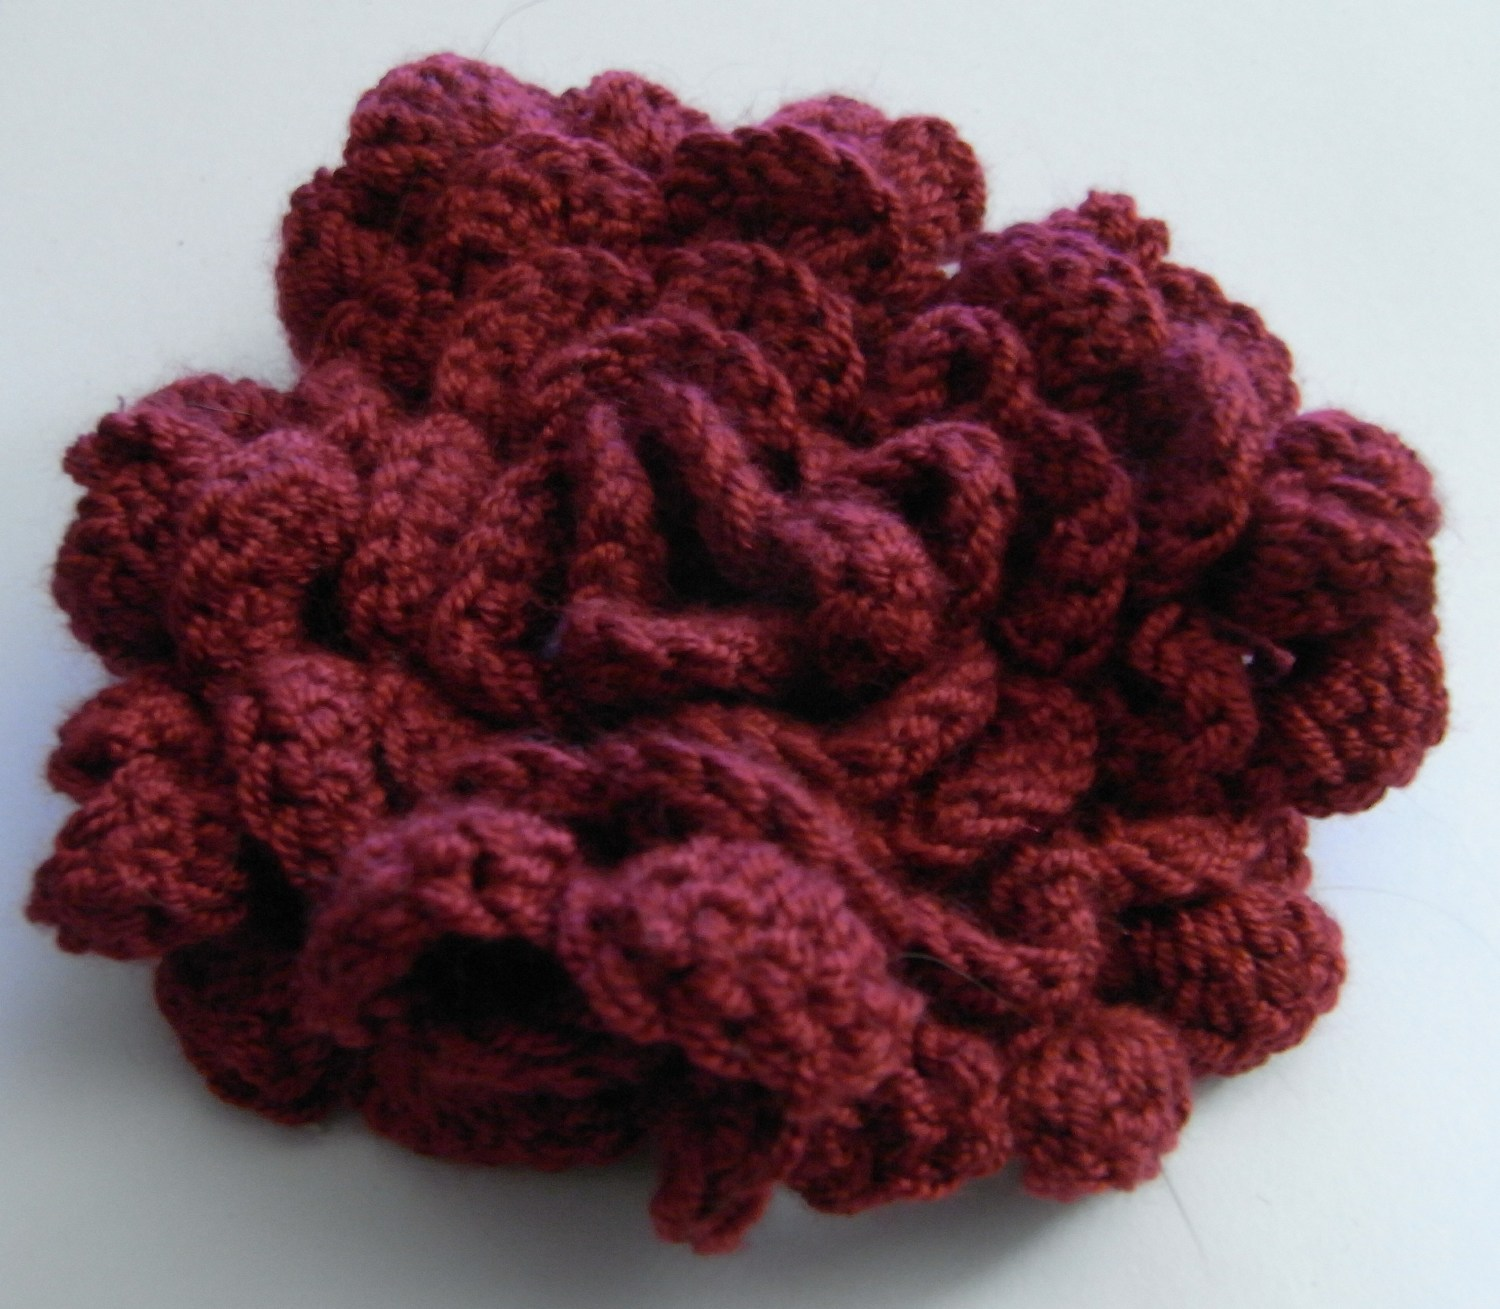 Crochet Flower Pattern Pictures : saraccino: Crochet flowers...